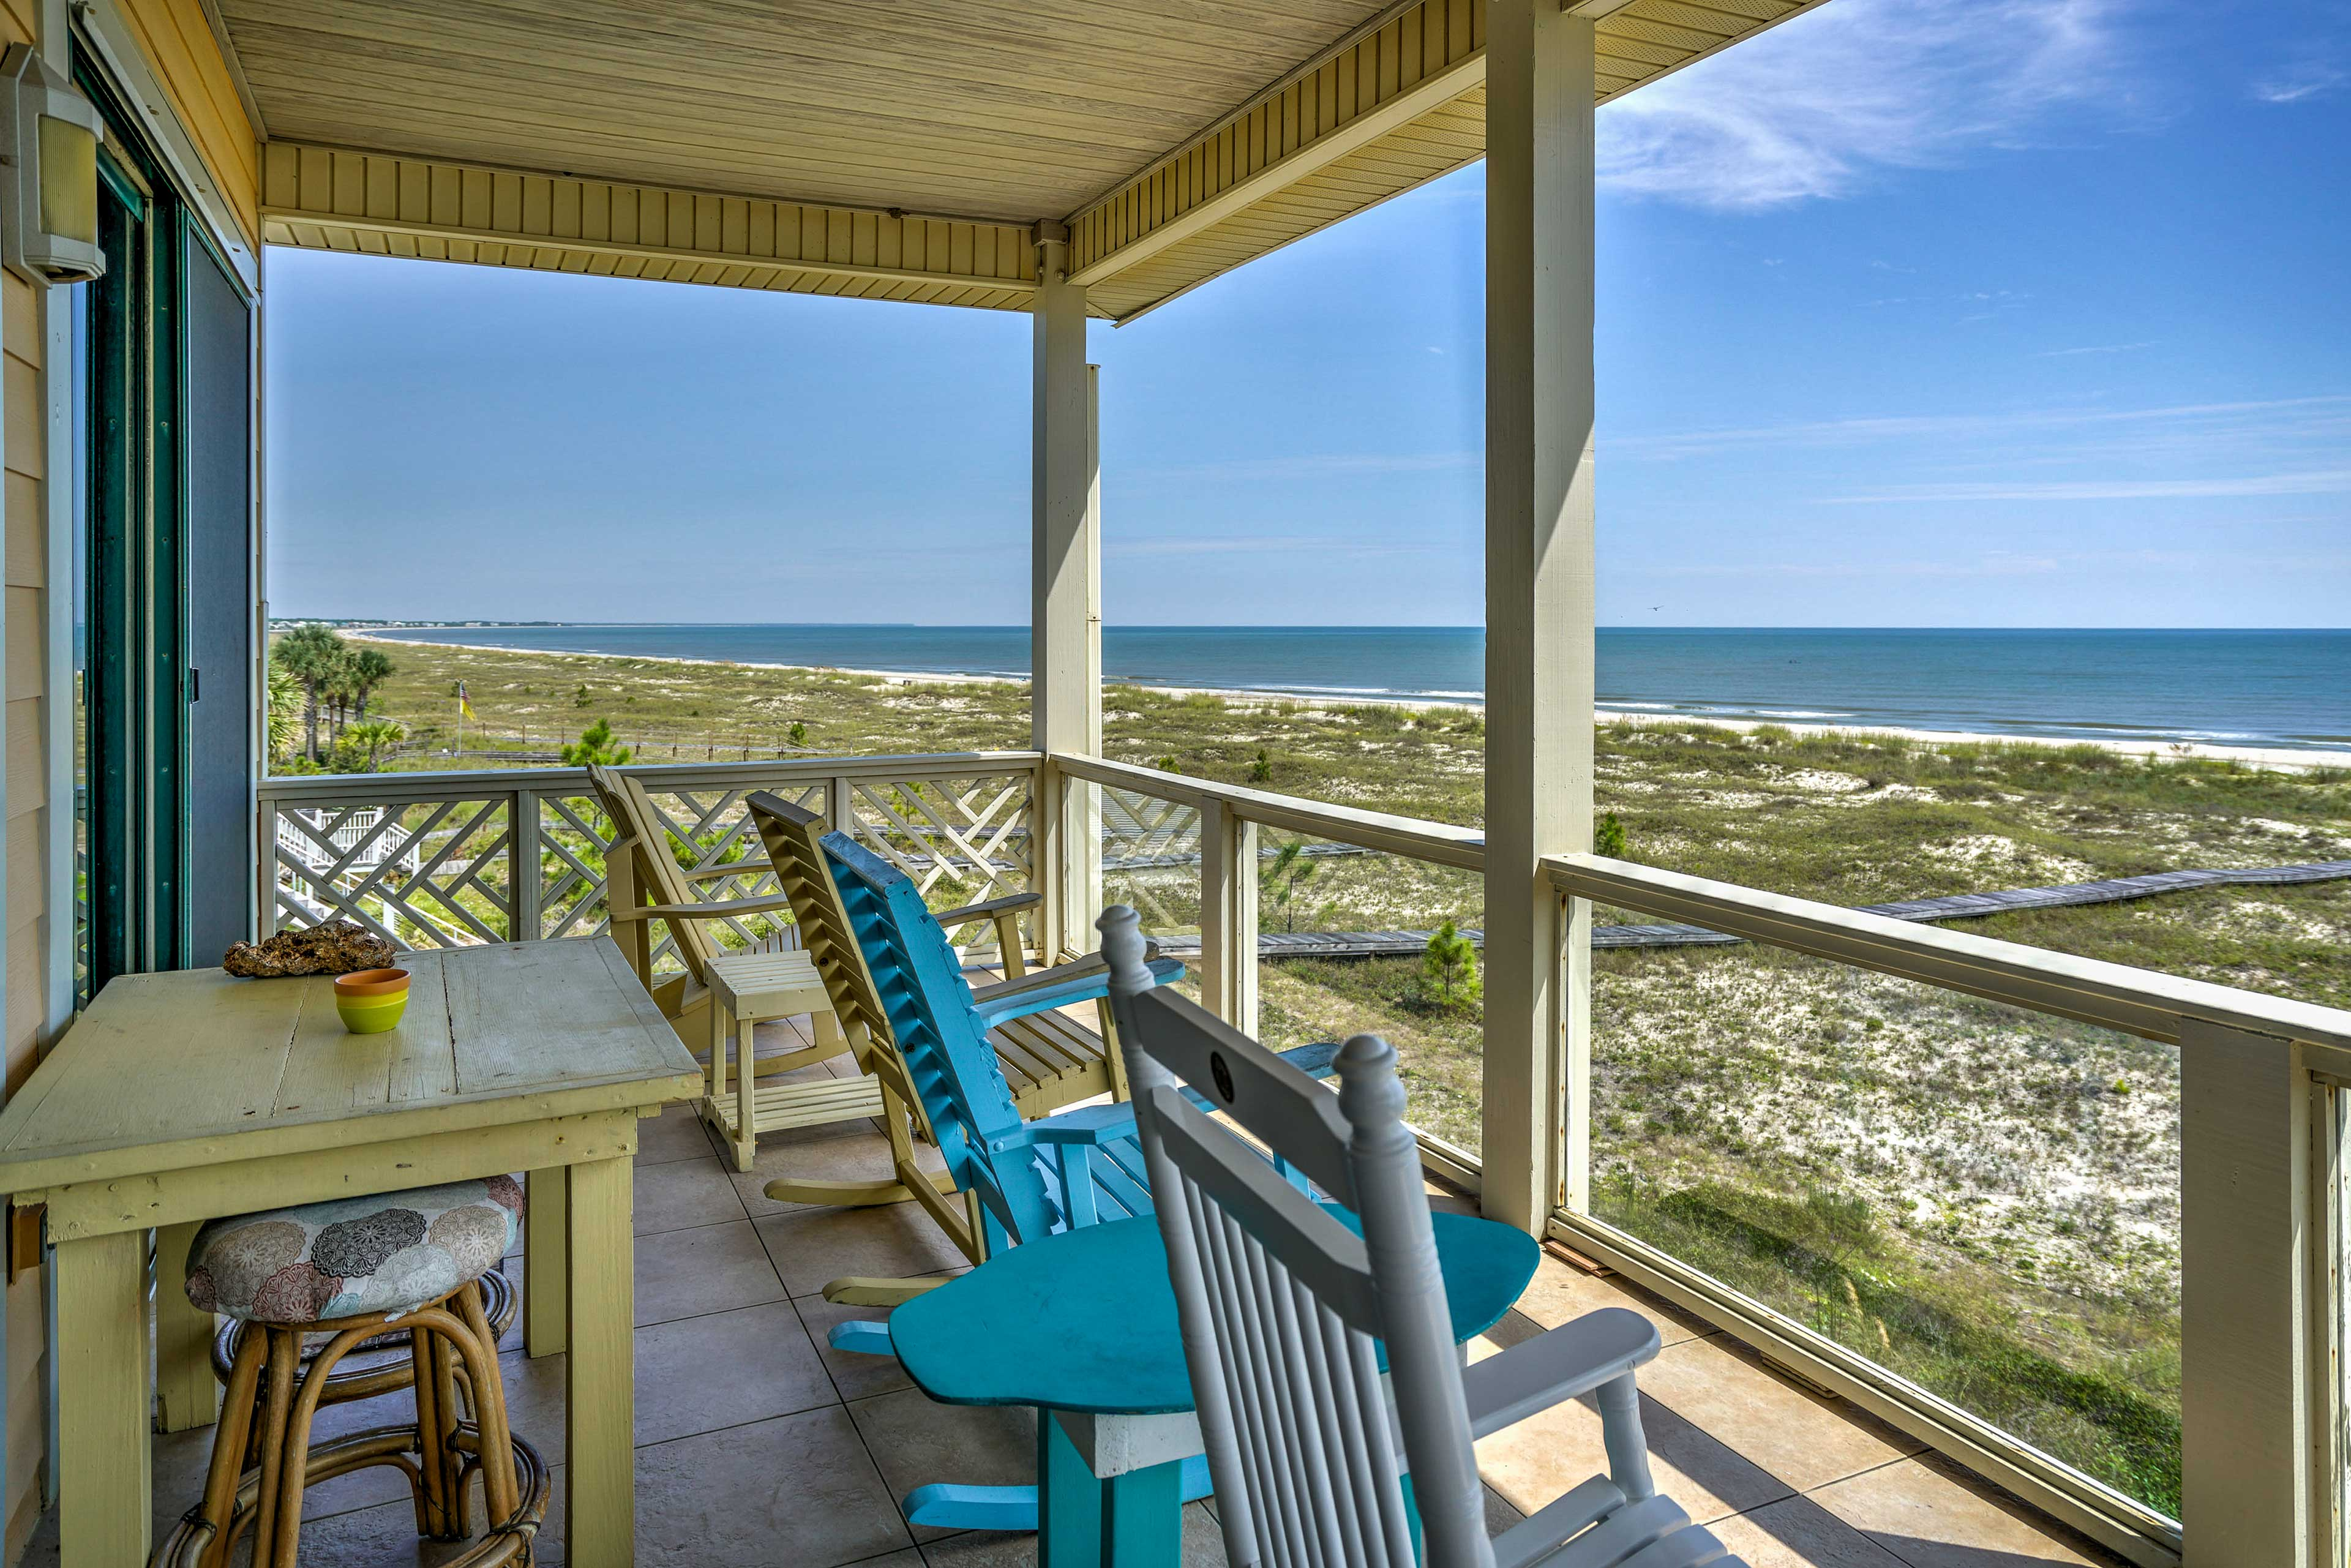 Soak up the Florida sunshine while staying at 'Jubilee,' 5-bed vacation rental!